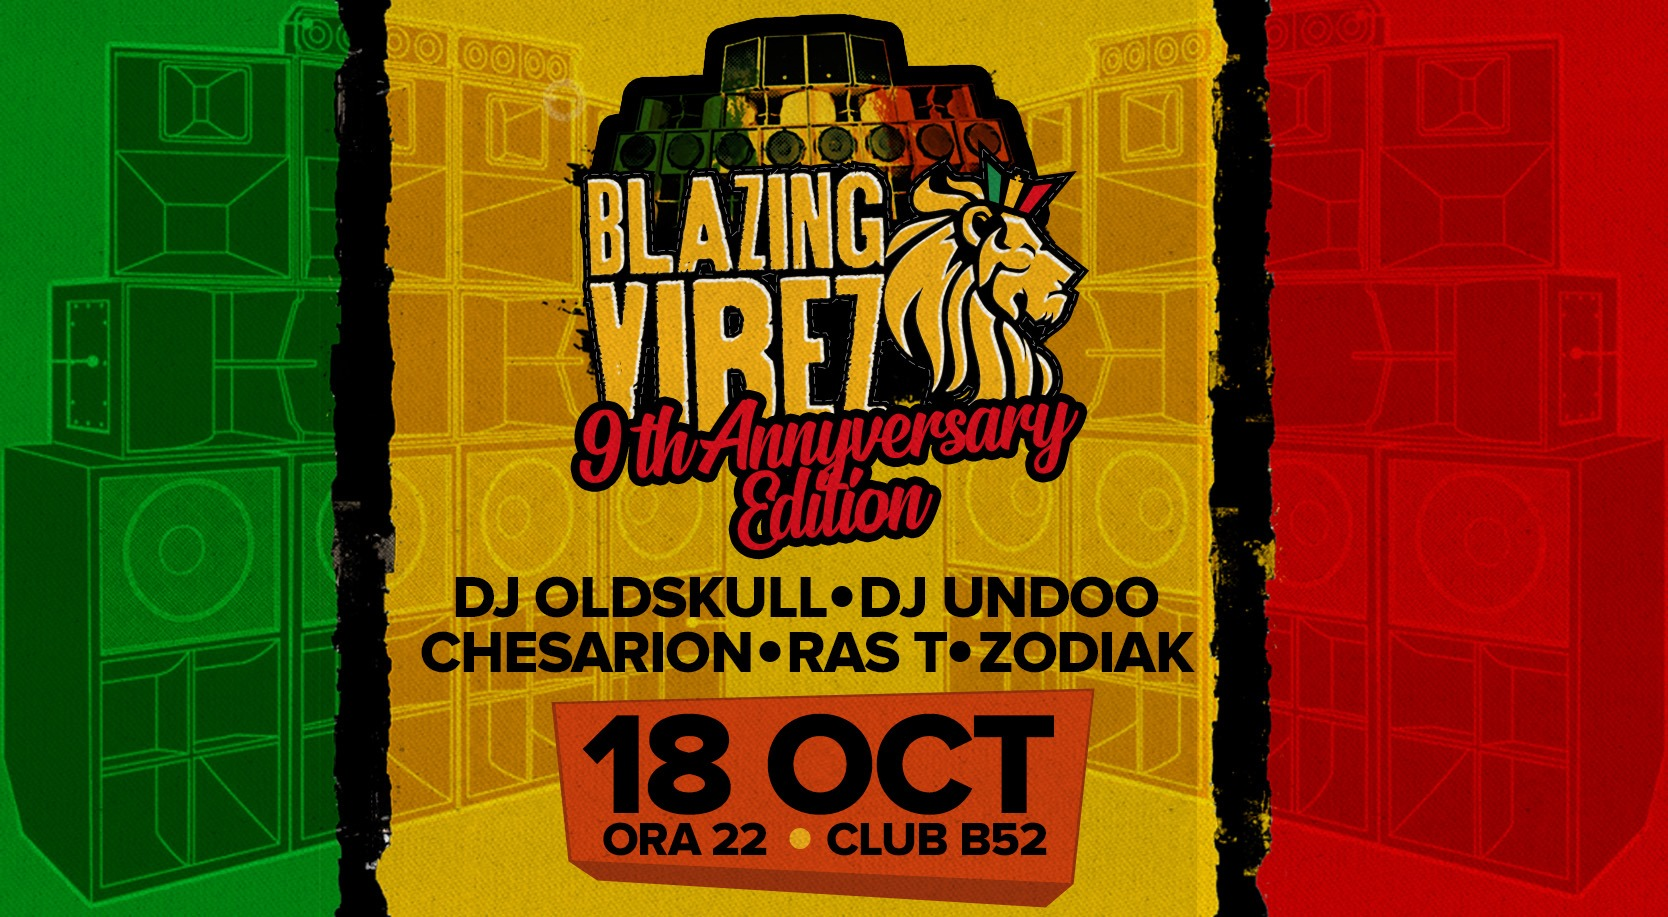 Blazing Vibez 9th Anniversary - Full Crew Showcase